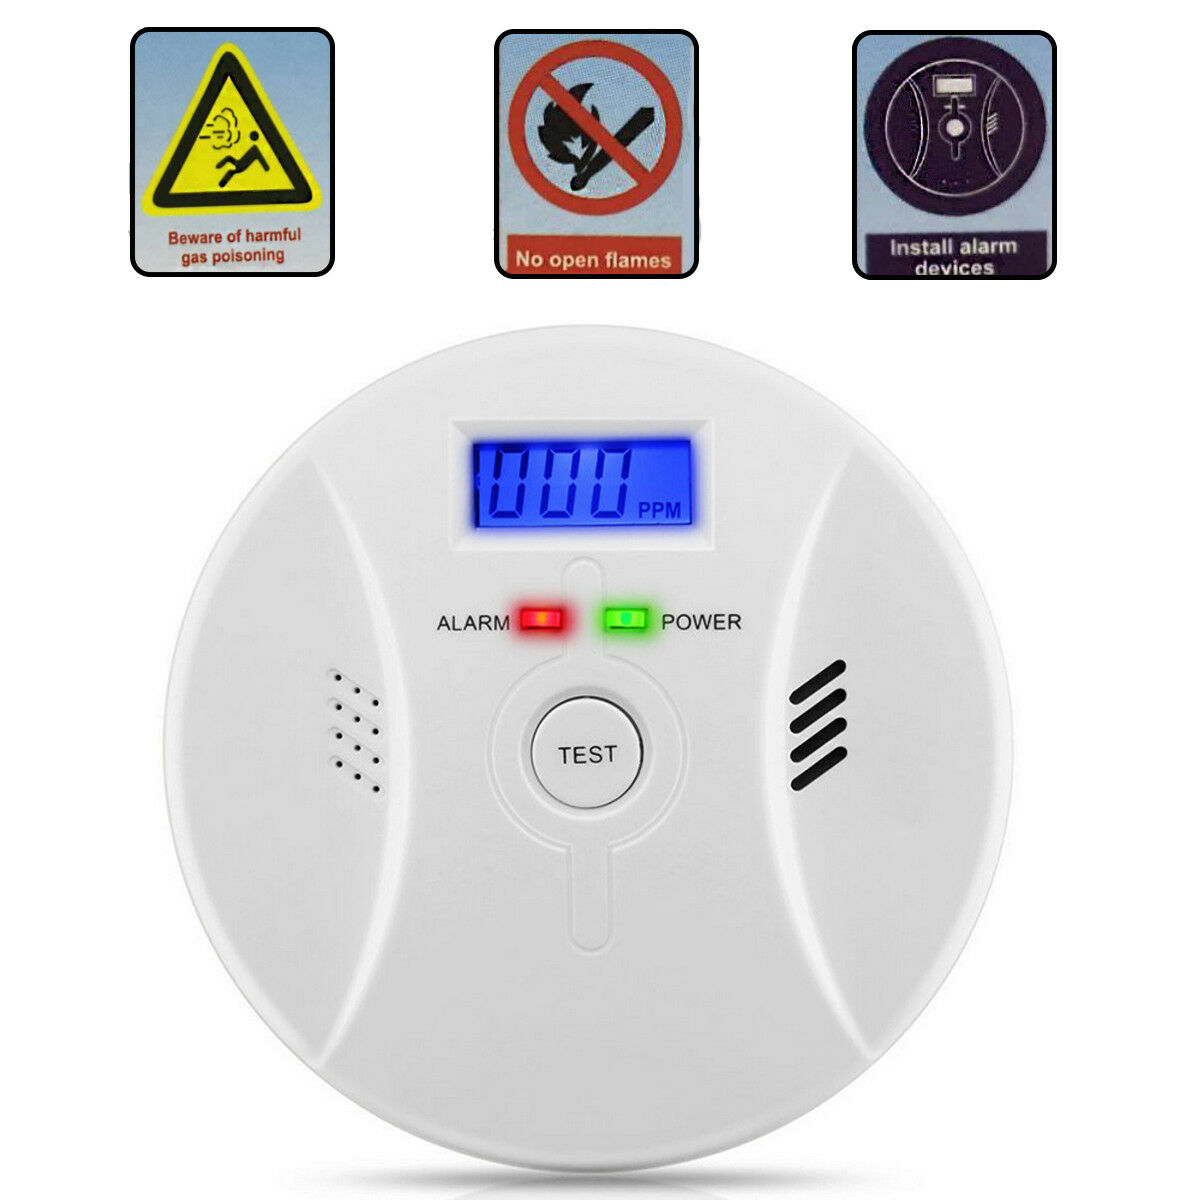 CO Carbon Monoxide Alarm Detector Home Kitchen Safety With V